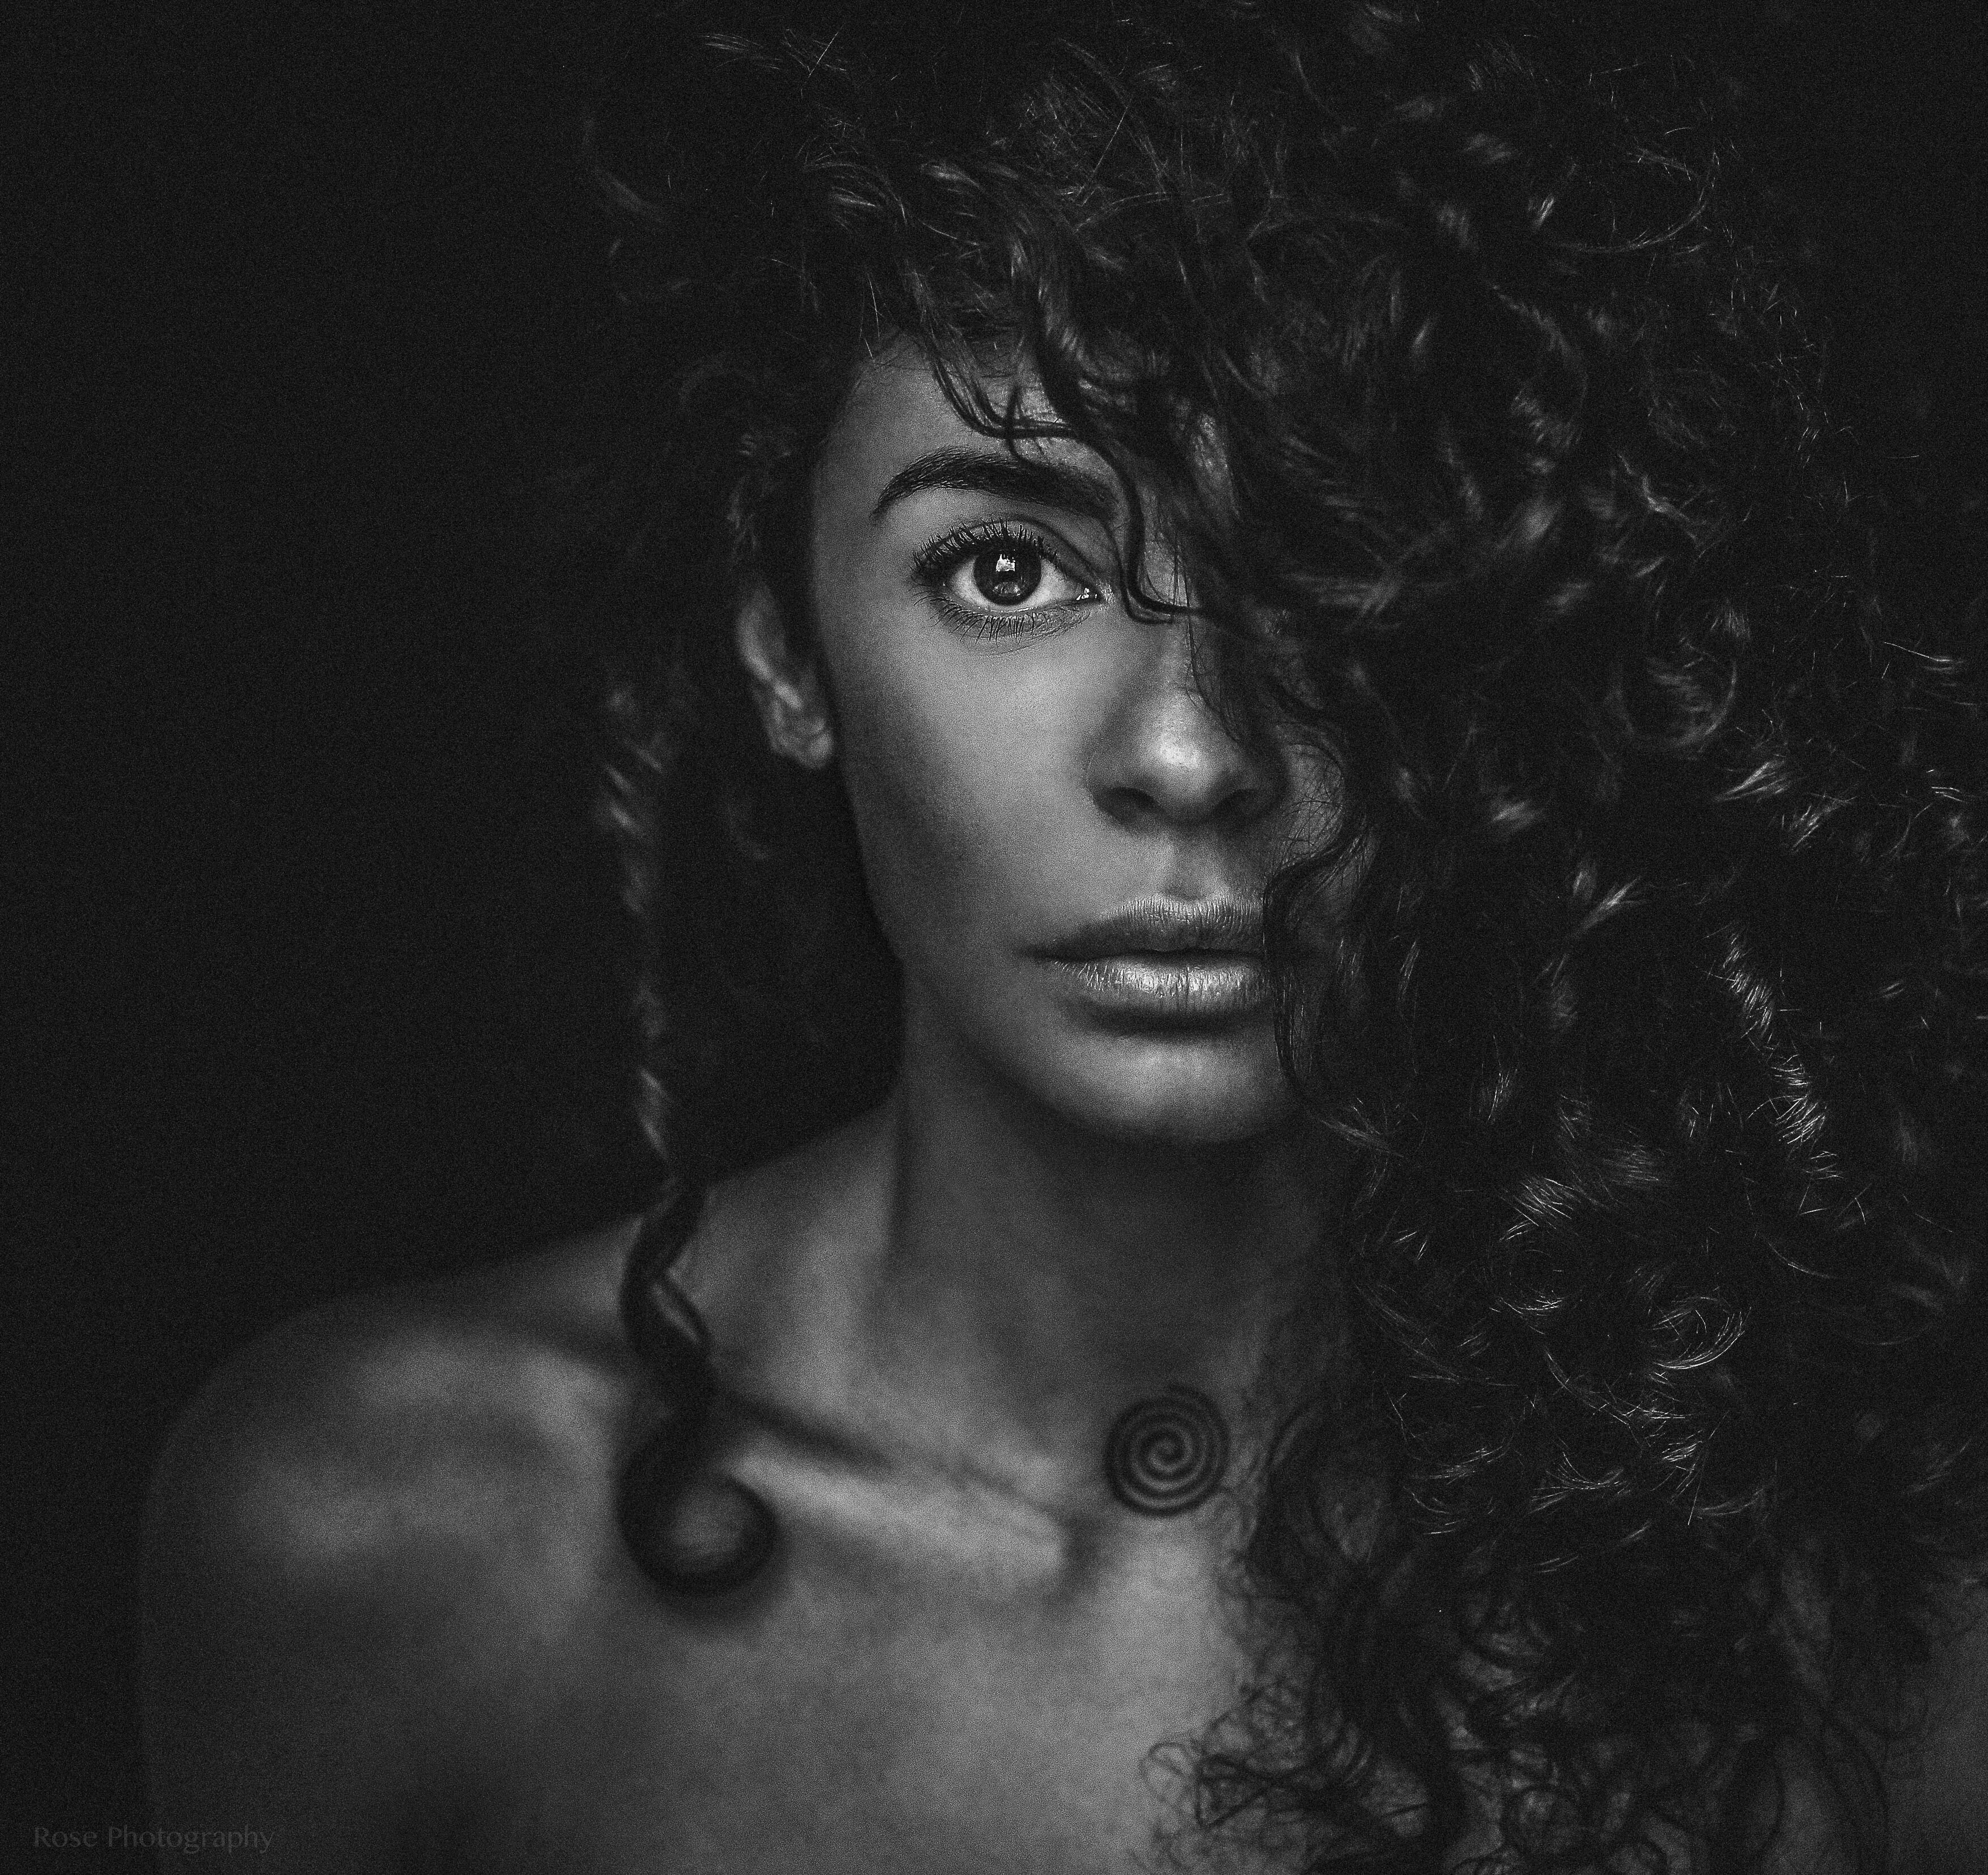 Fajah Lourens: de acteerkriebels in 'Suriname' even terug